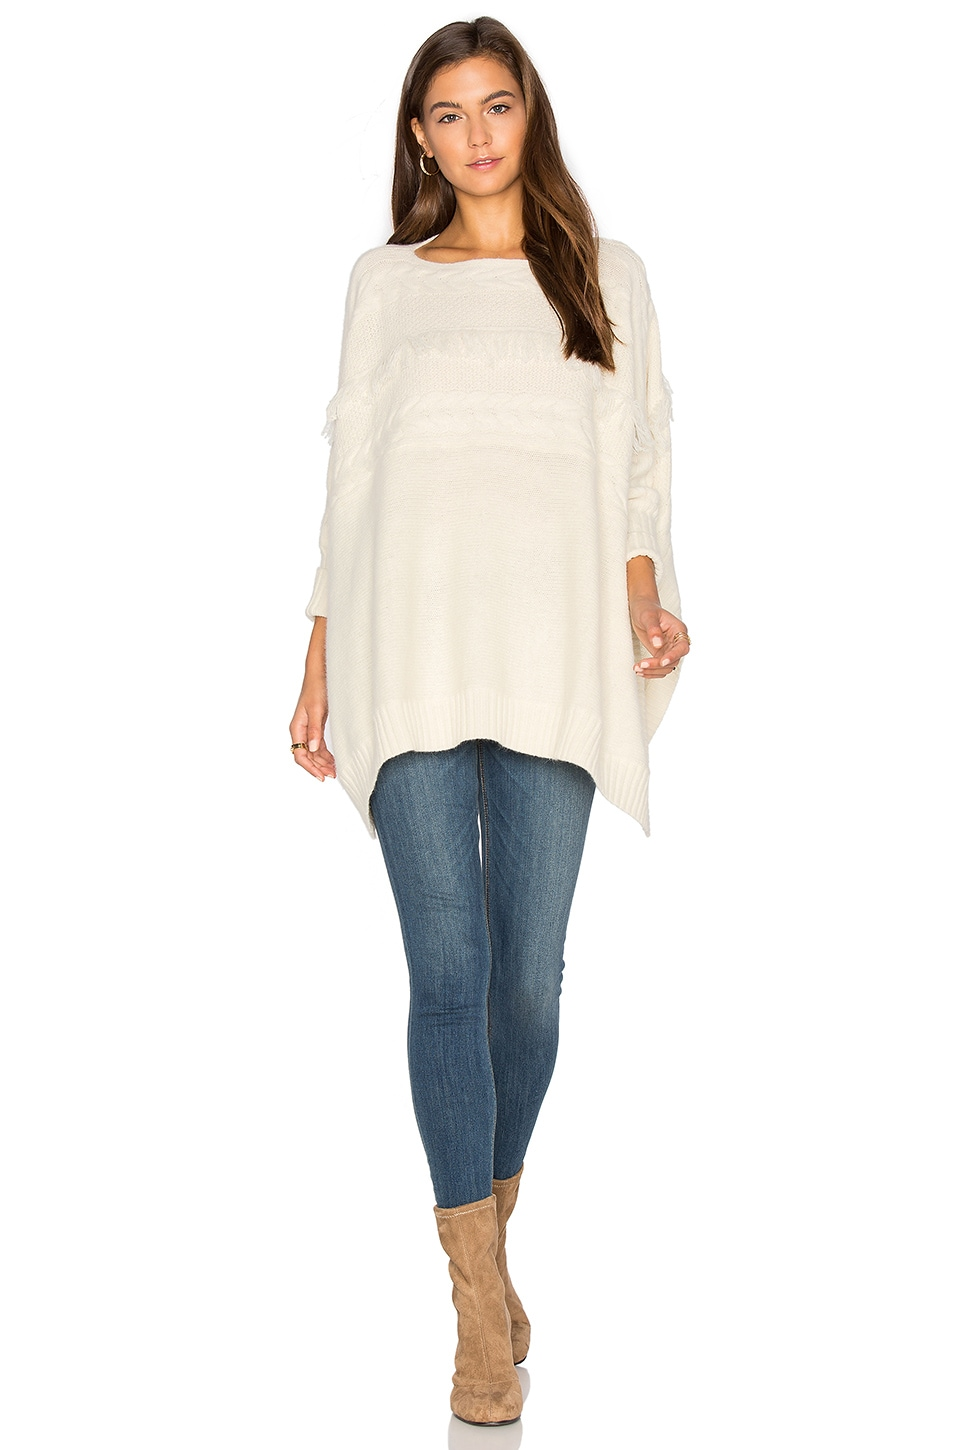 Dolly Fringe Sweater by Fine Collection